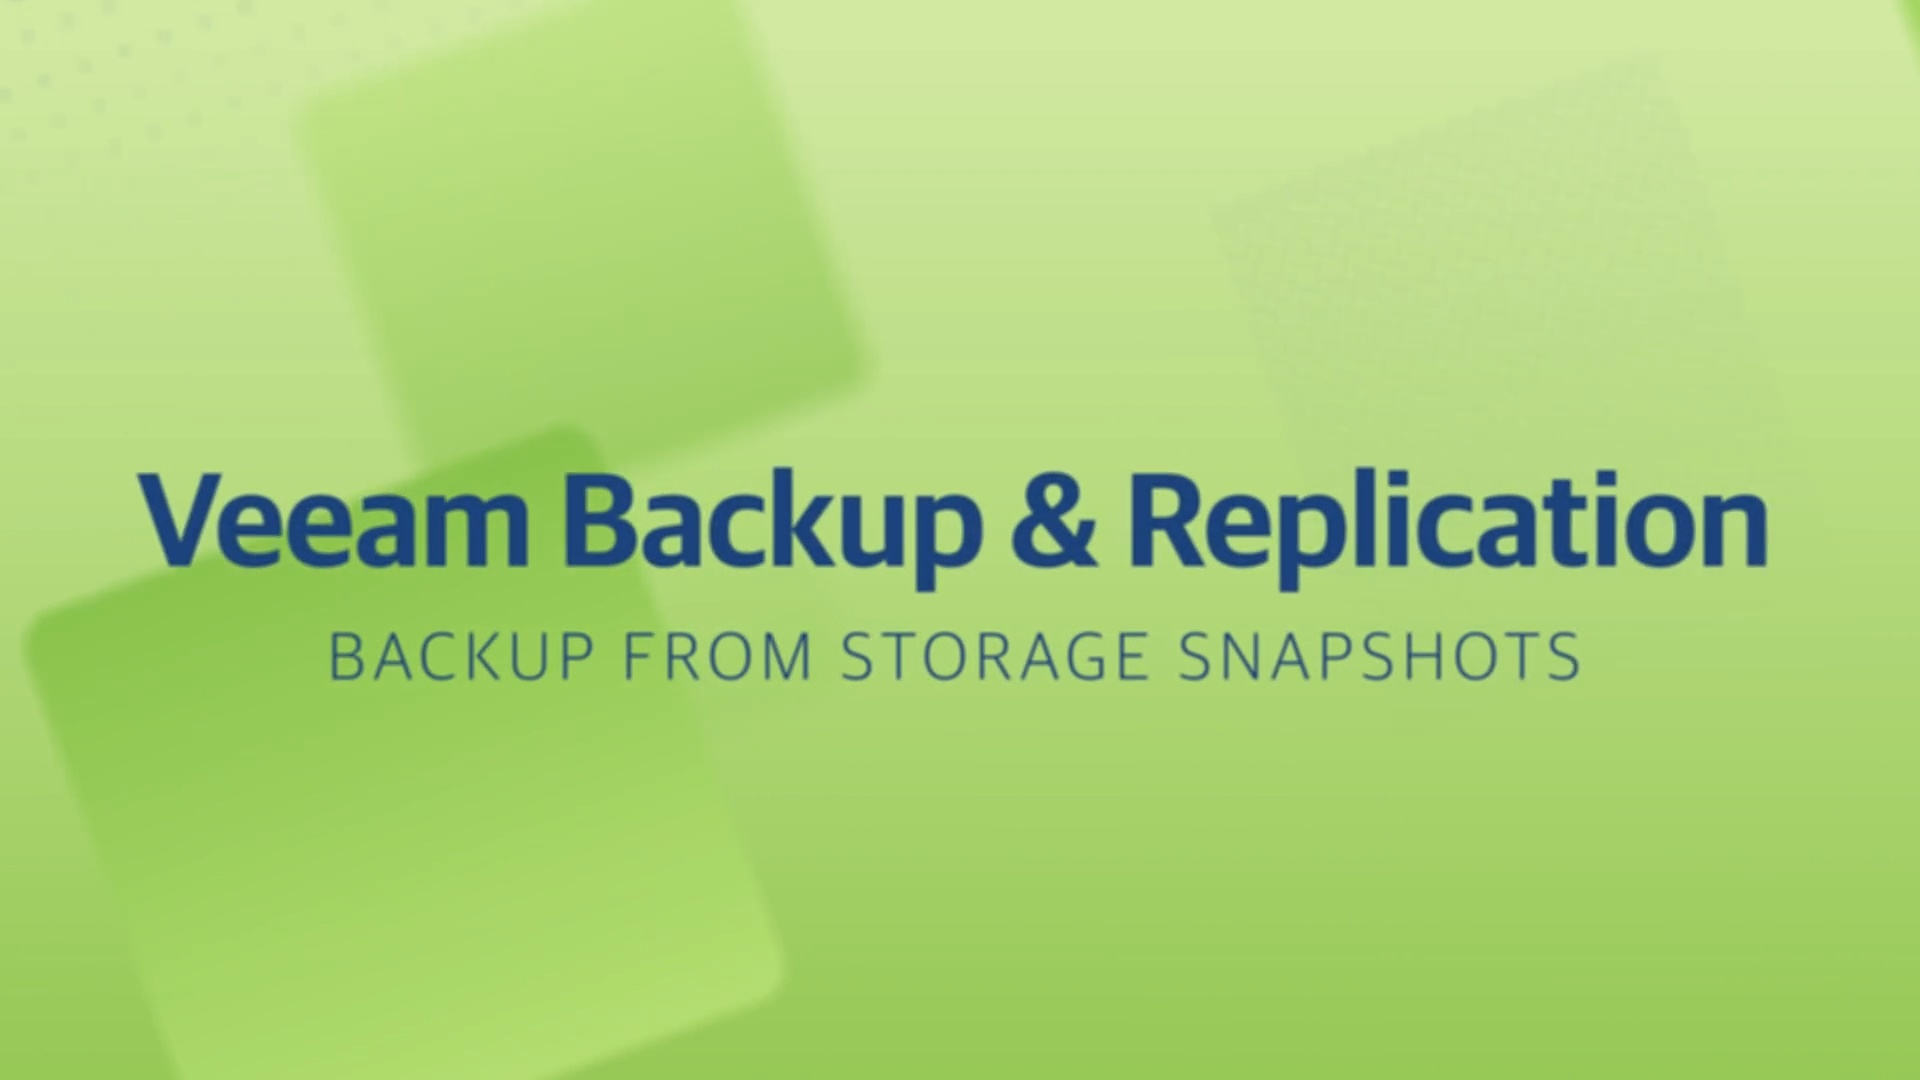 Product launch v11 - VBR - Backup from Storage Snapshots